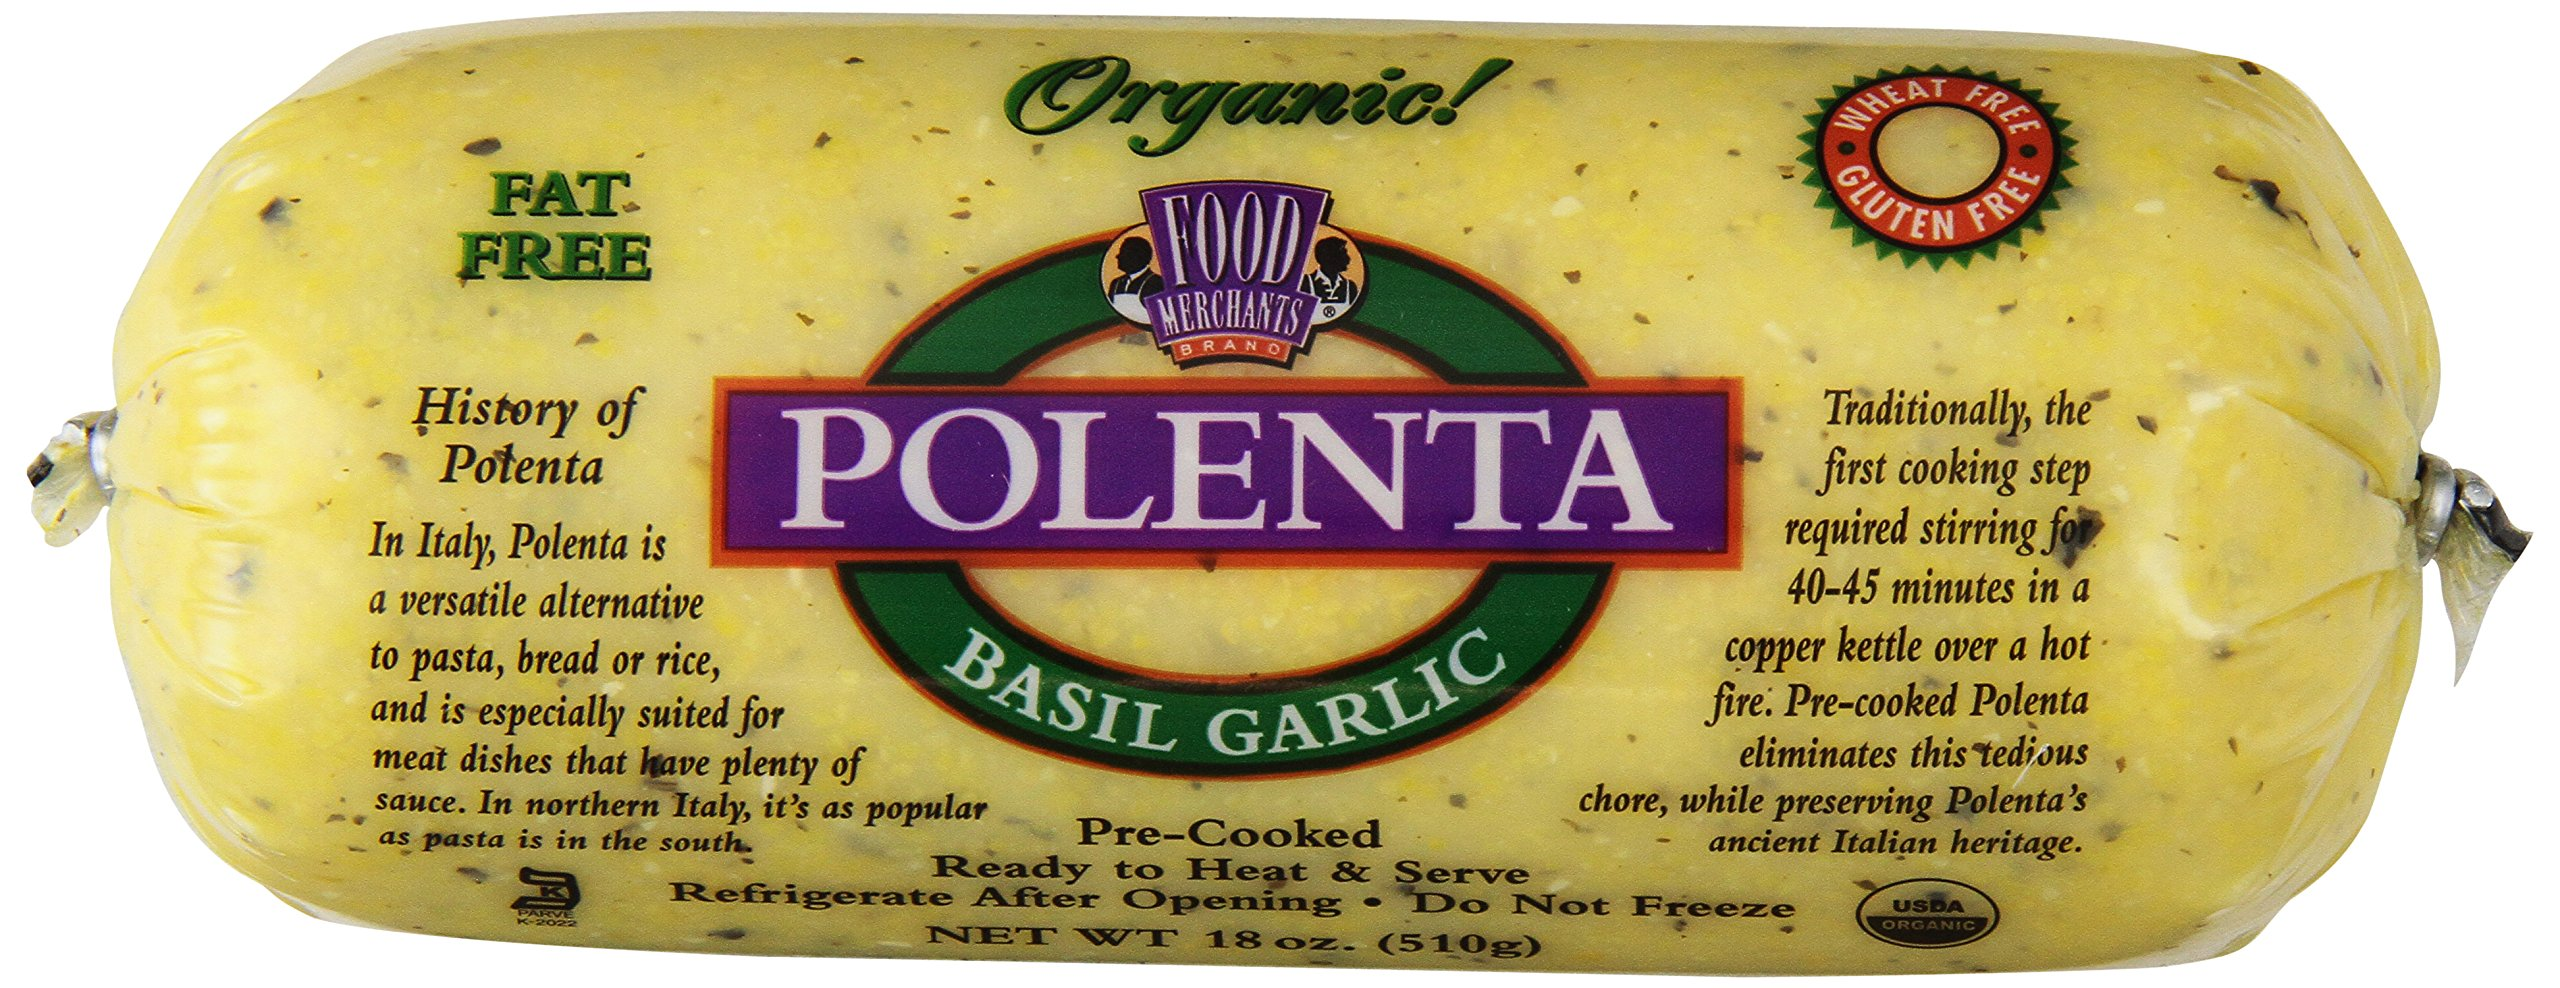 Food Merchants Organic Polenta, Basil Garlic, 18 Ounce (Pack of 12) by Food Merchants